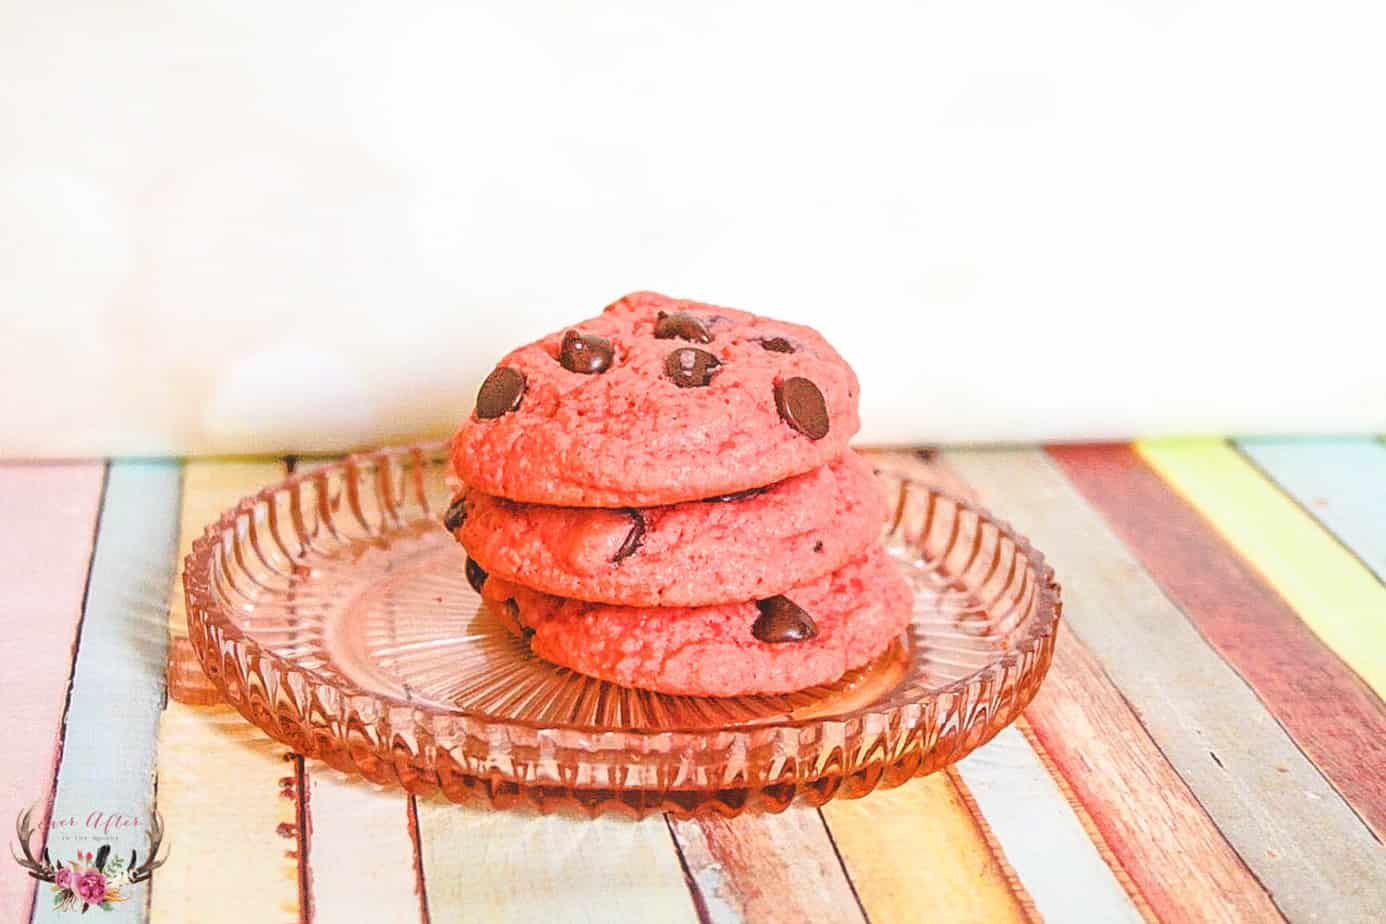 I love making desserts that are pretty to look at and also taste amazing too. My husband loves a classic red velvet cake or cookie. I decided to make a pink velvet cookie with chocolate chips. These cookies are soft and delicious and will be the perfect touch to a Valentine's Day dessert.